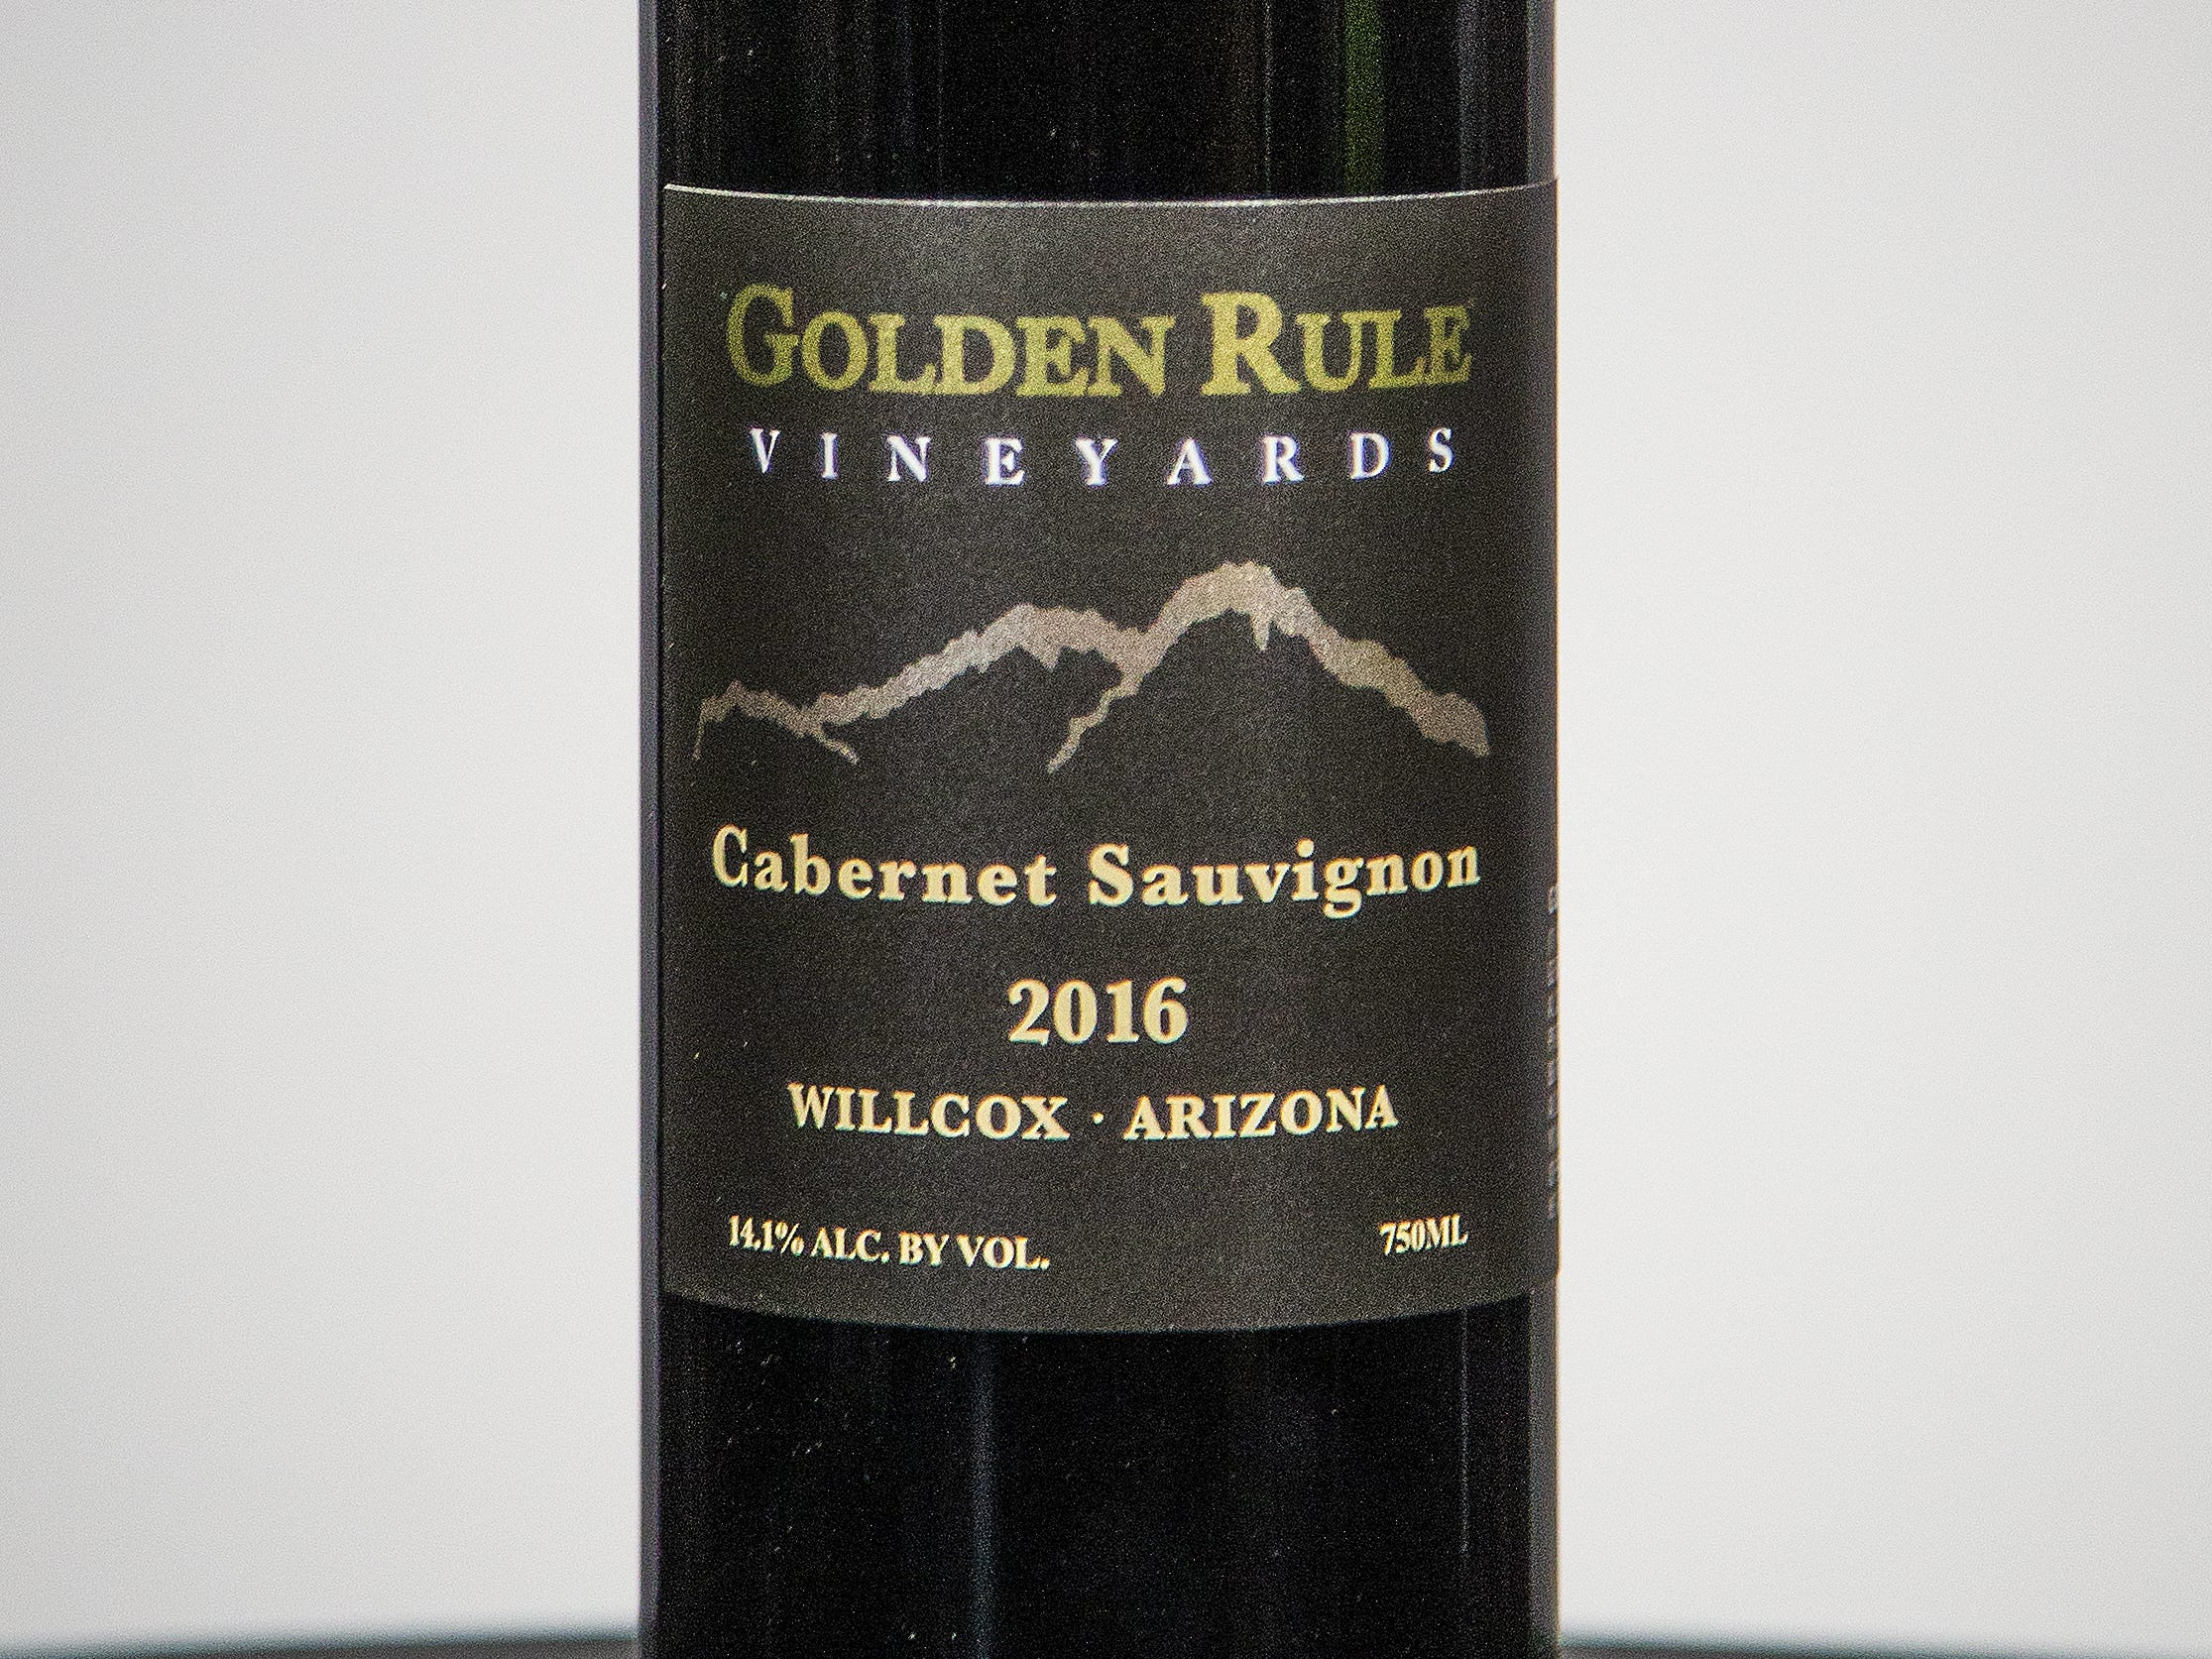 Best Cabernet Sauvignon: Golden Rule Vineyards  Cabernet Sauvignon 2016.